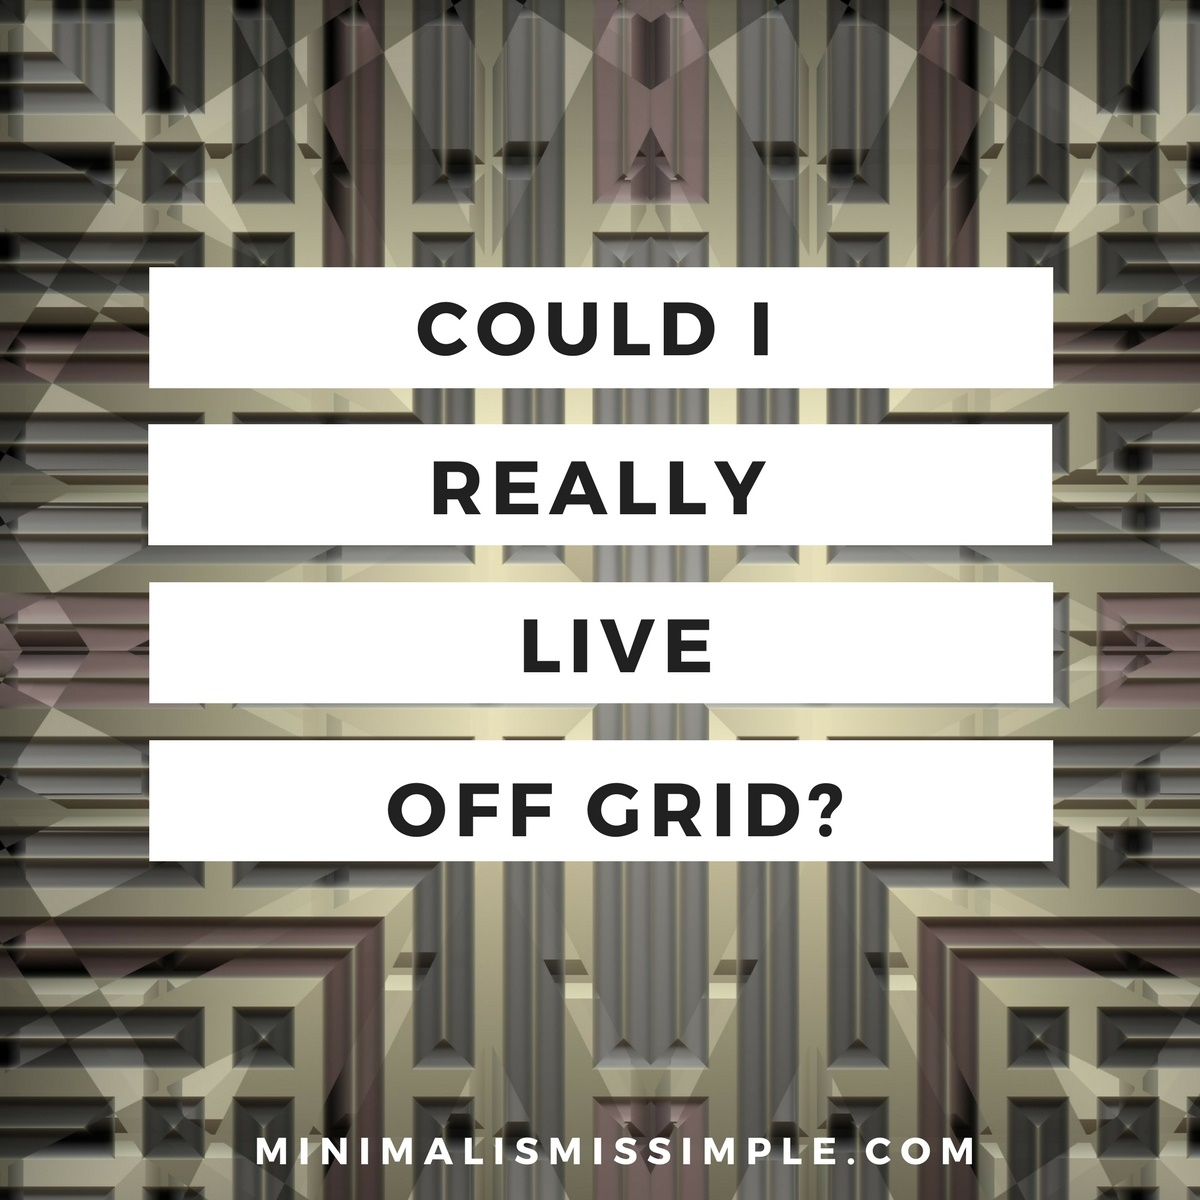 could i live off grid minimalismissimple.com